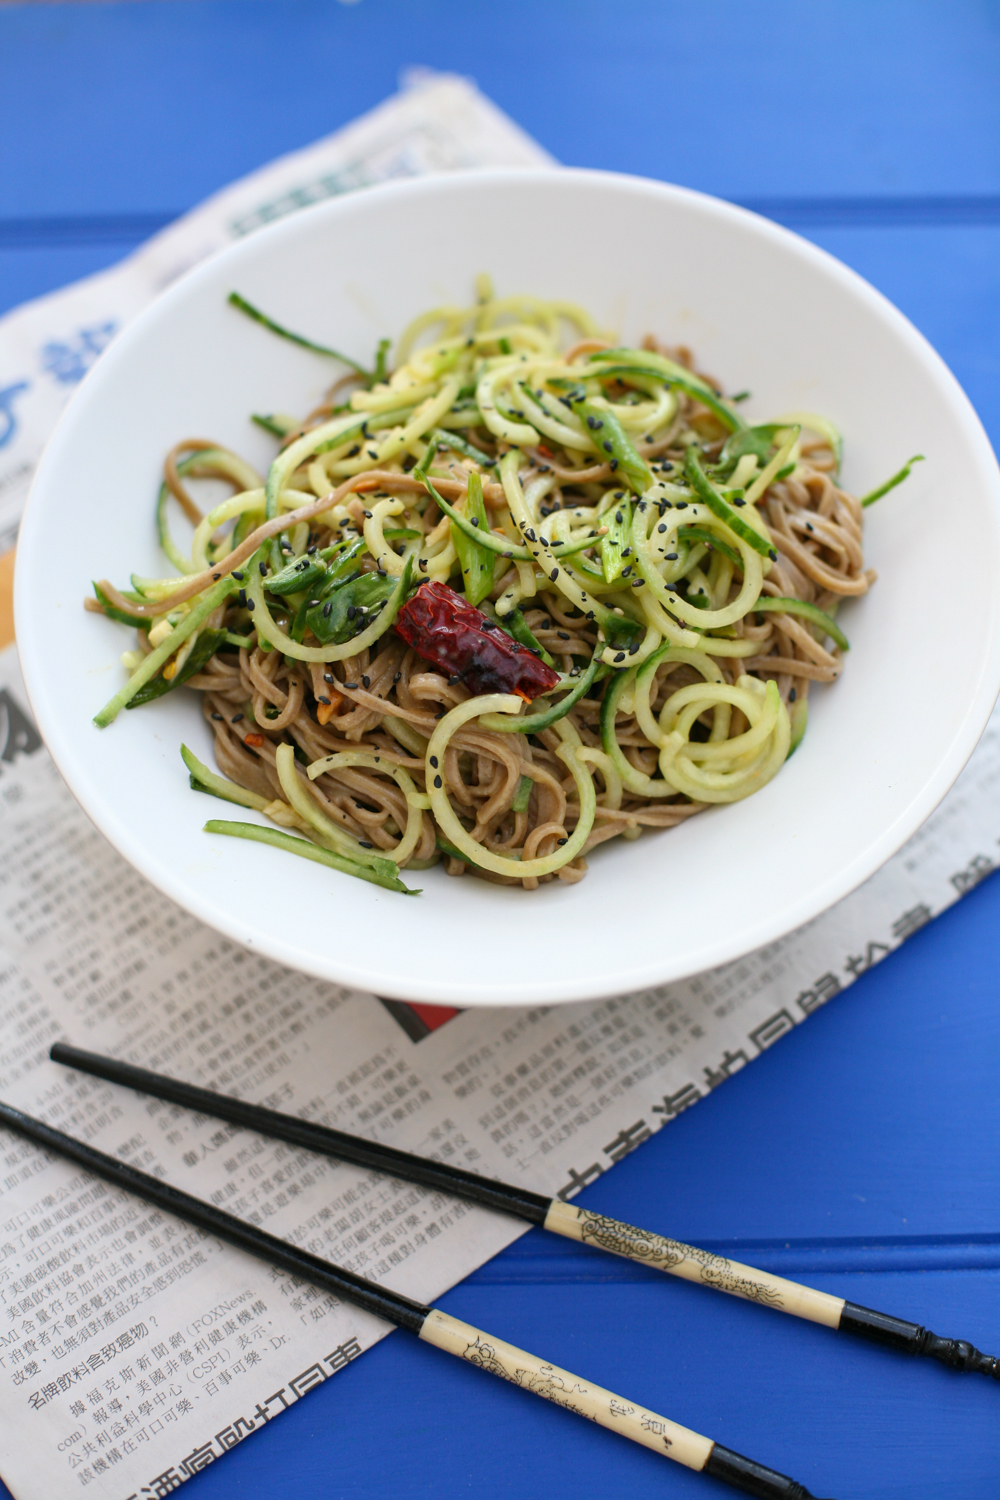 Cold Spiced Soba and Cucumber Noodles